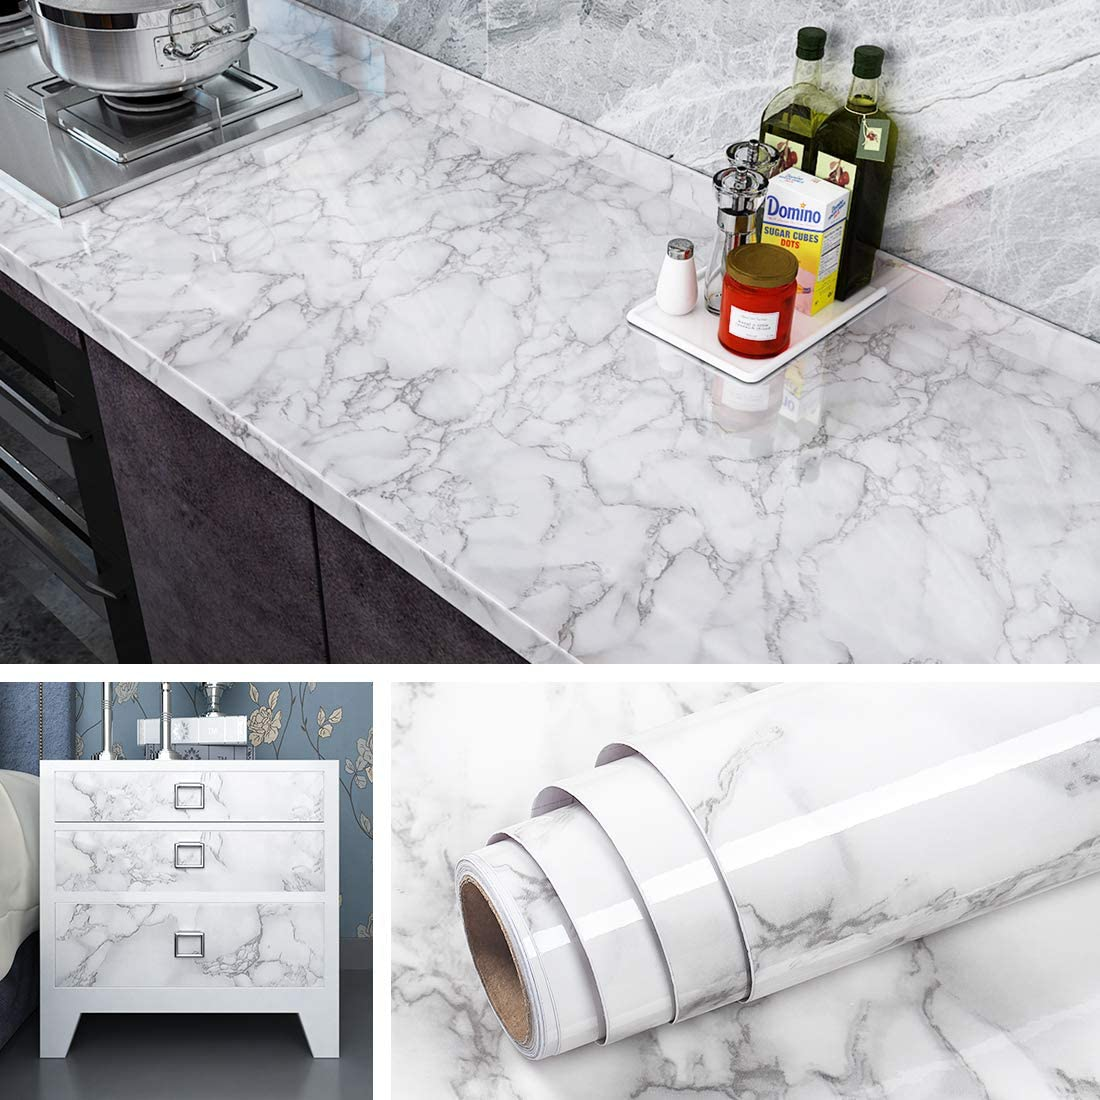 Livelynine Marble Wallpaper Peel And Stick Countertops For Kitchen Waterproof Vinyl Countertop Contact Paper For Desk Cover Dresser Top Counter Top Covering Table Sticker 15 8x78 8 Inch Amazon Com